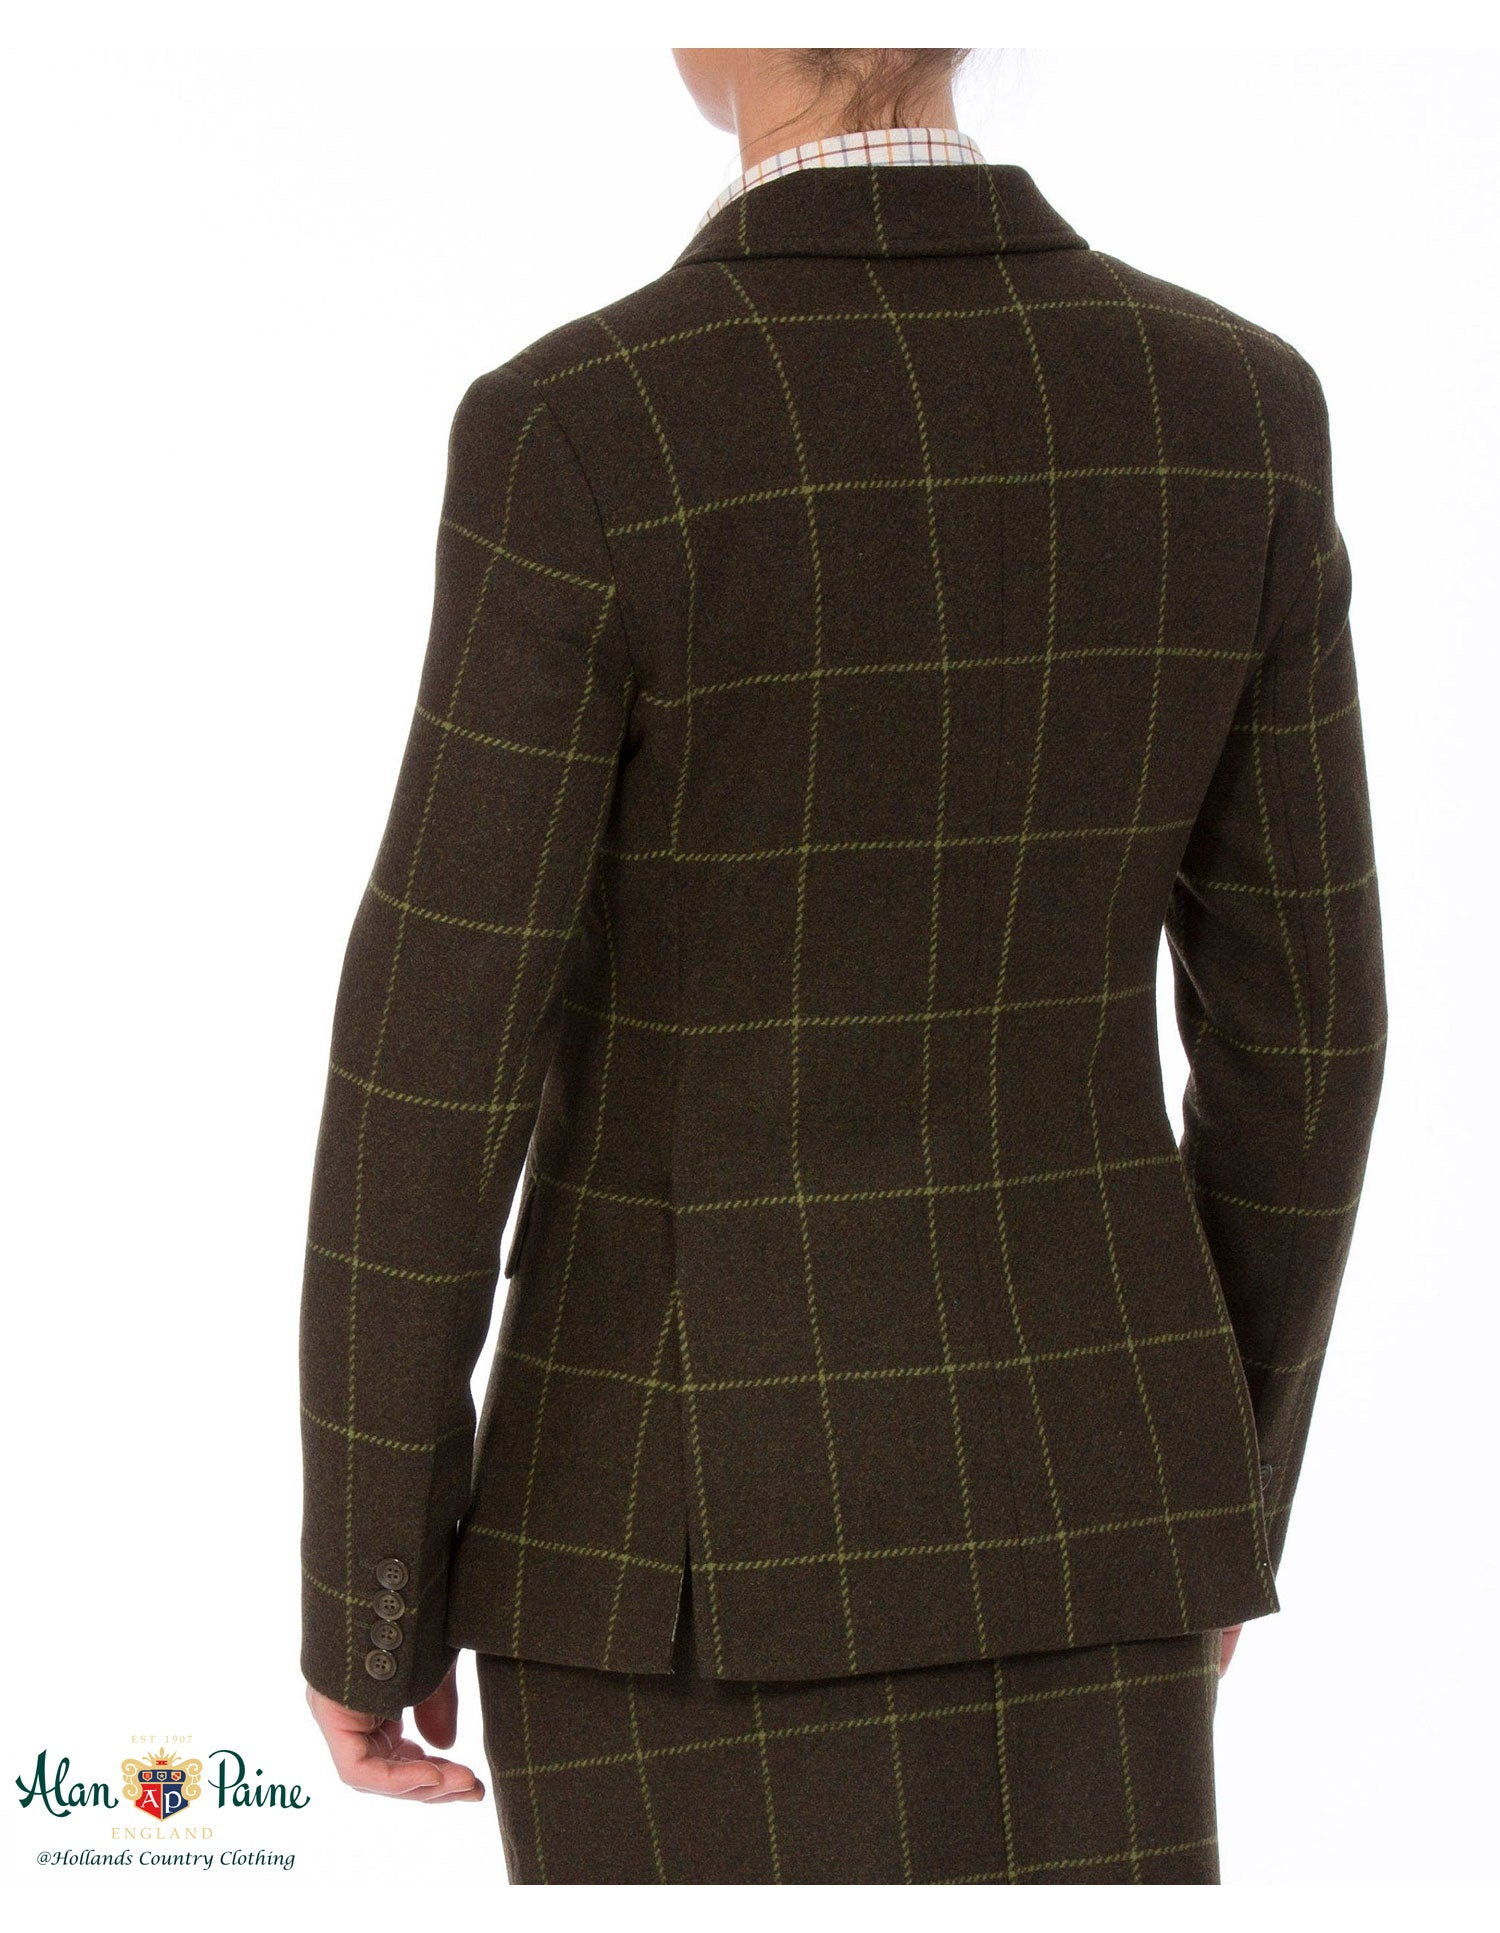 rear view Alan Paine Combrook Tweed Blazer avocado tweed